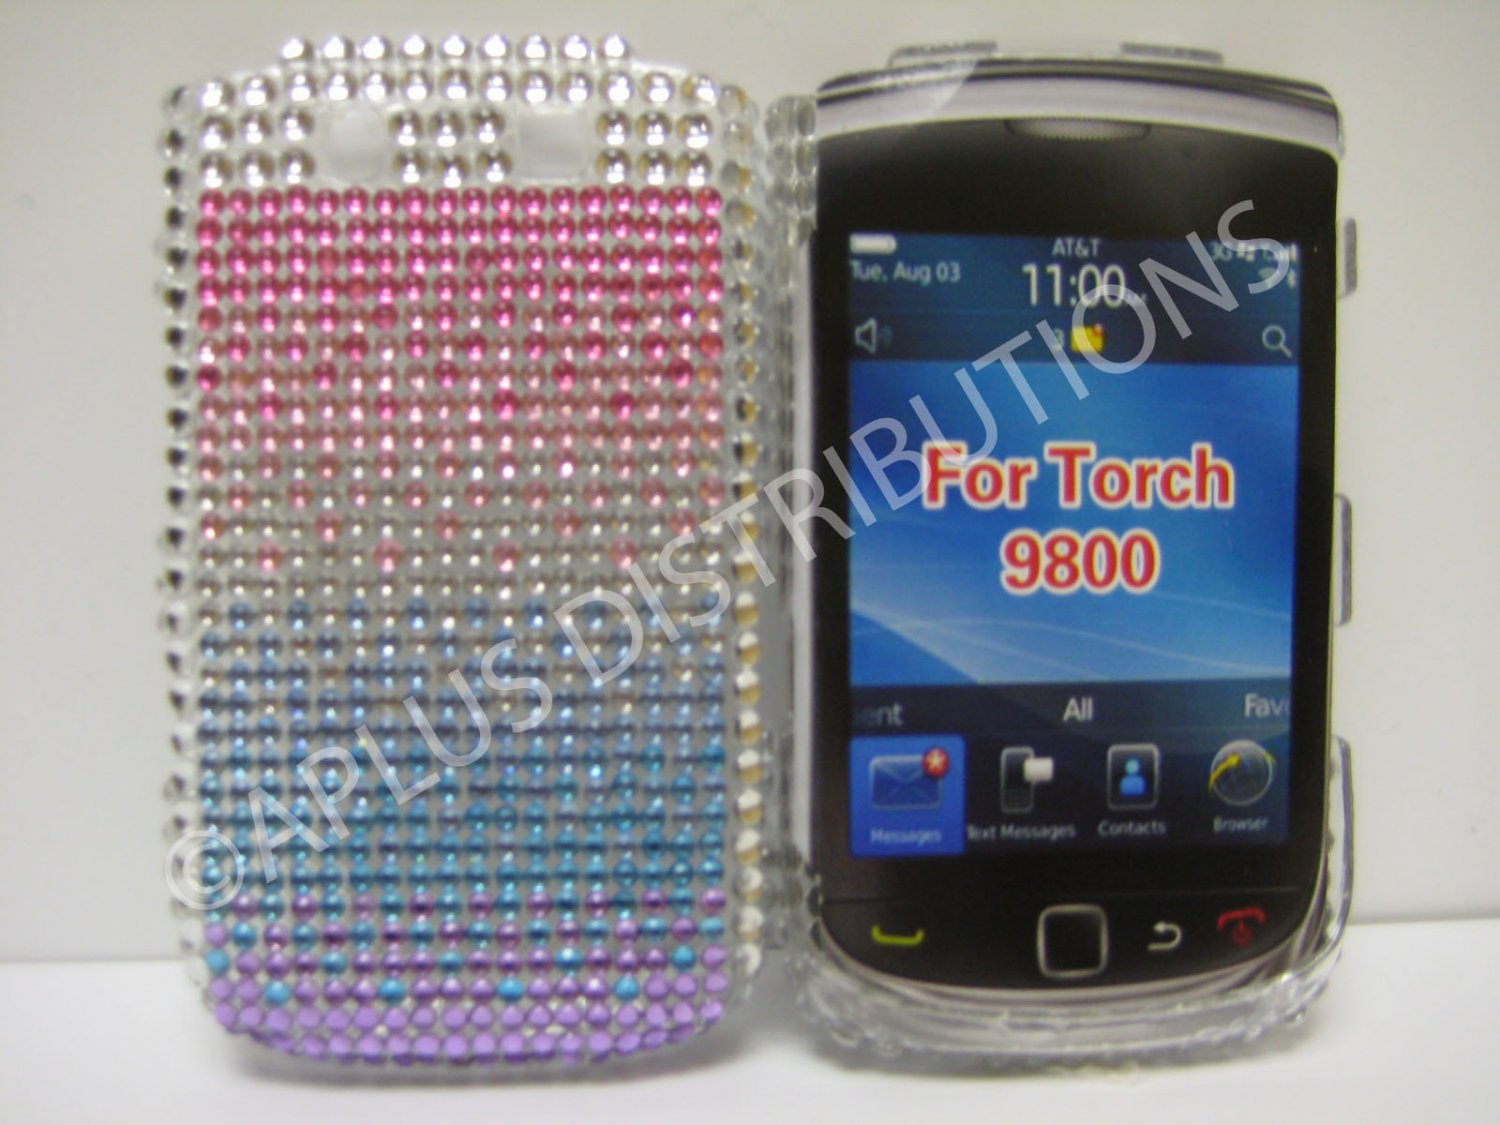 New Shades Of Pink N Purple Crystal Bling Diamond Case For Blackberry 9800 - (0010)